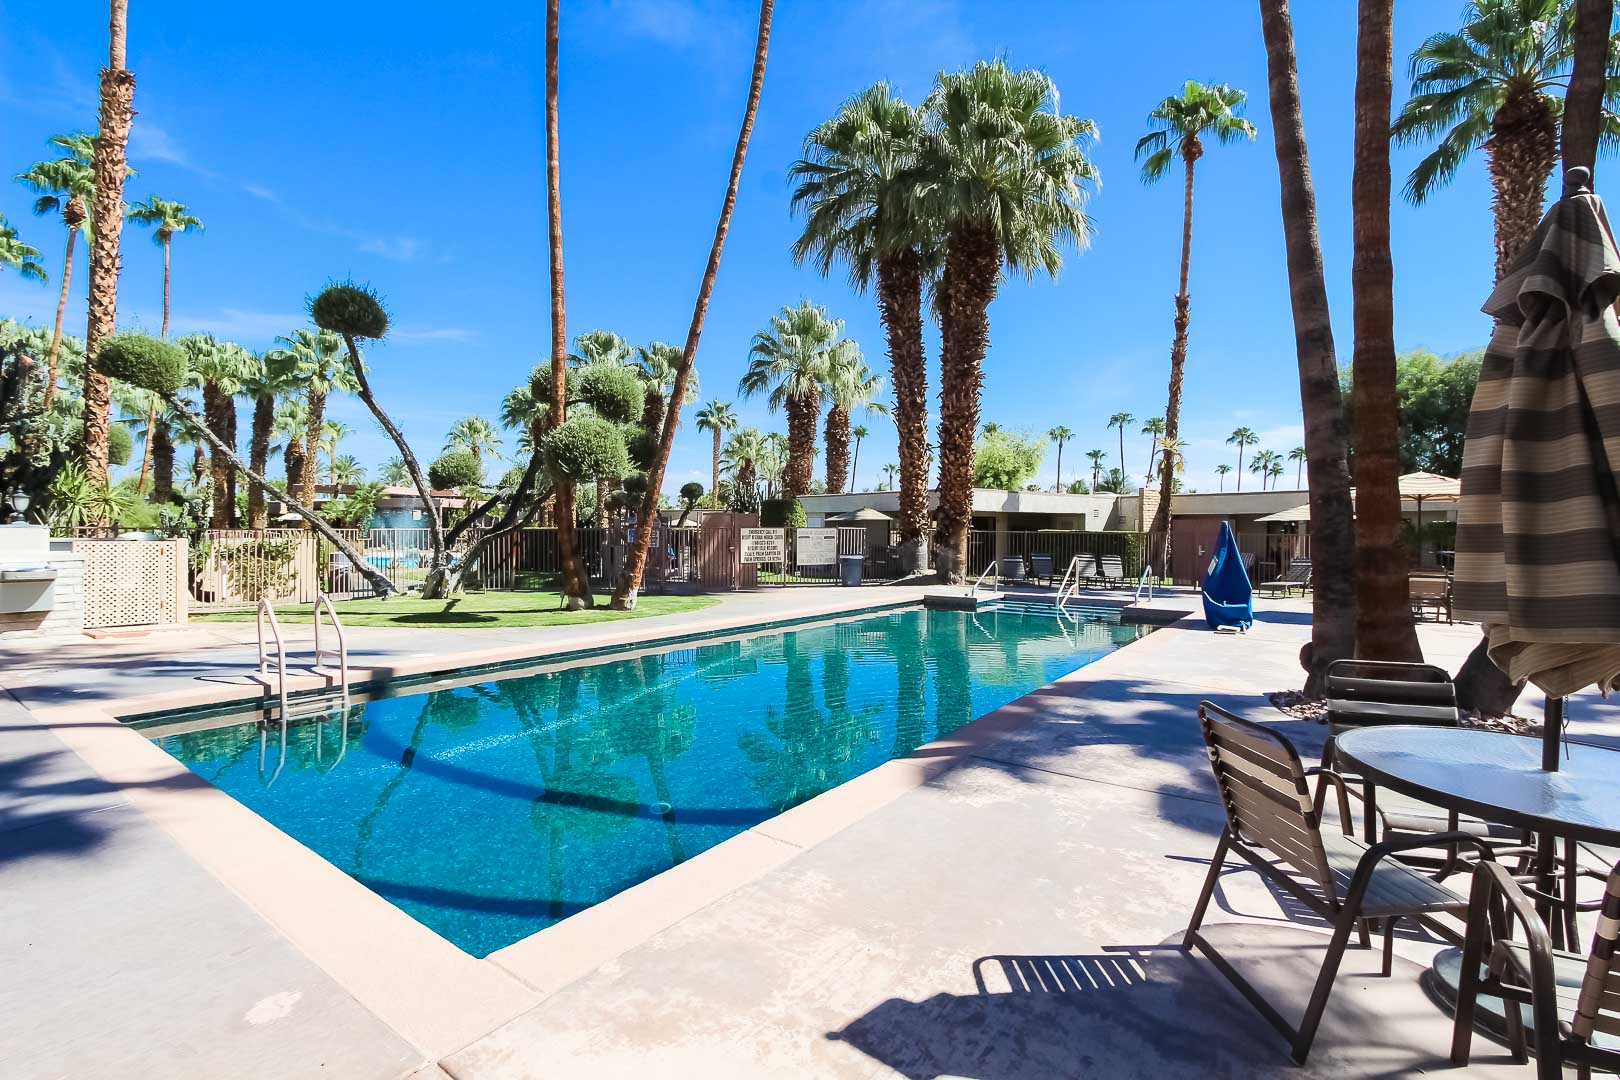 A refreshing outside swimming pool at VRI's Desert Isle Resort in California.